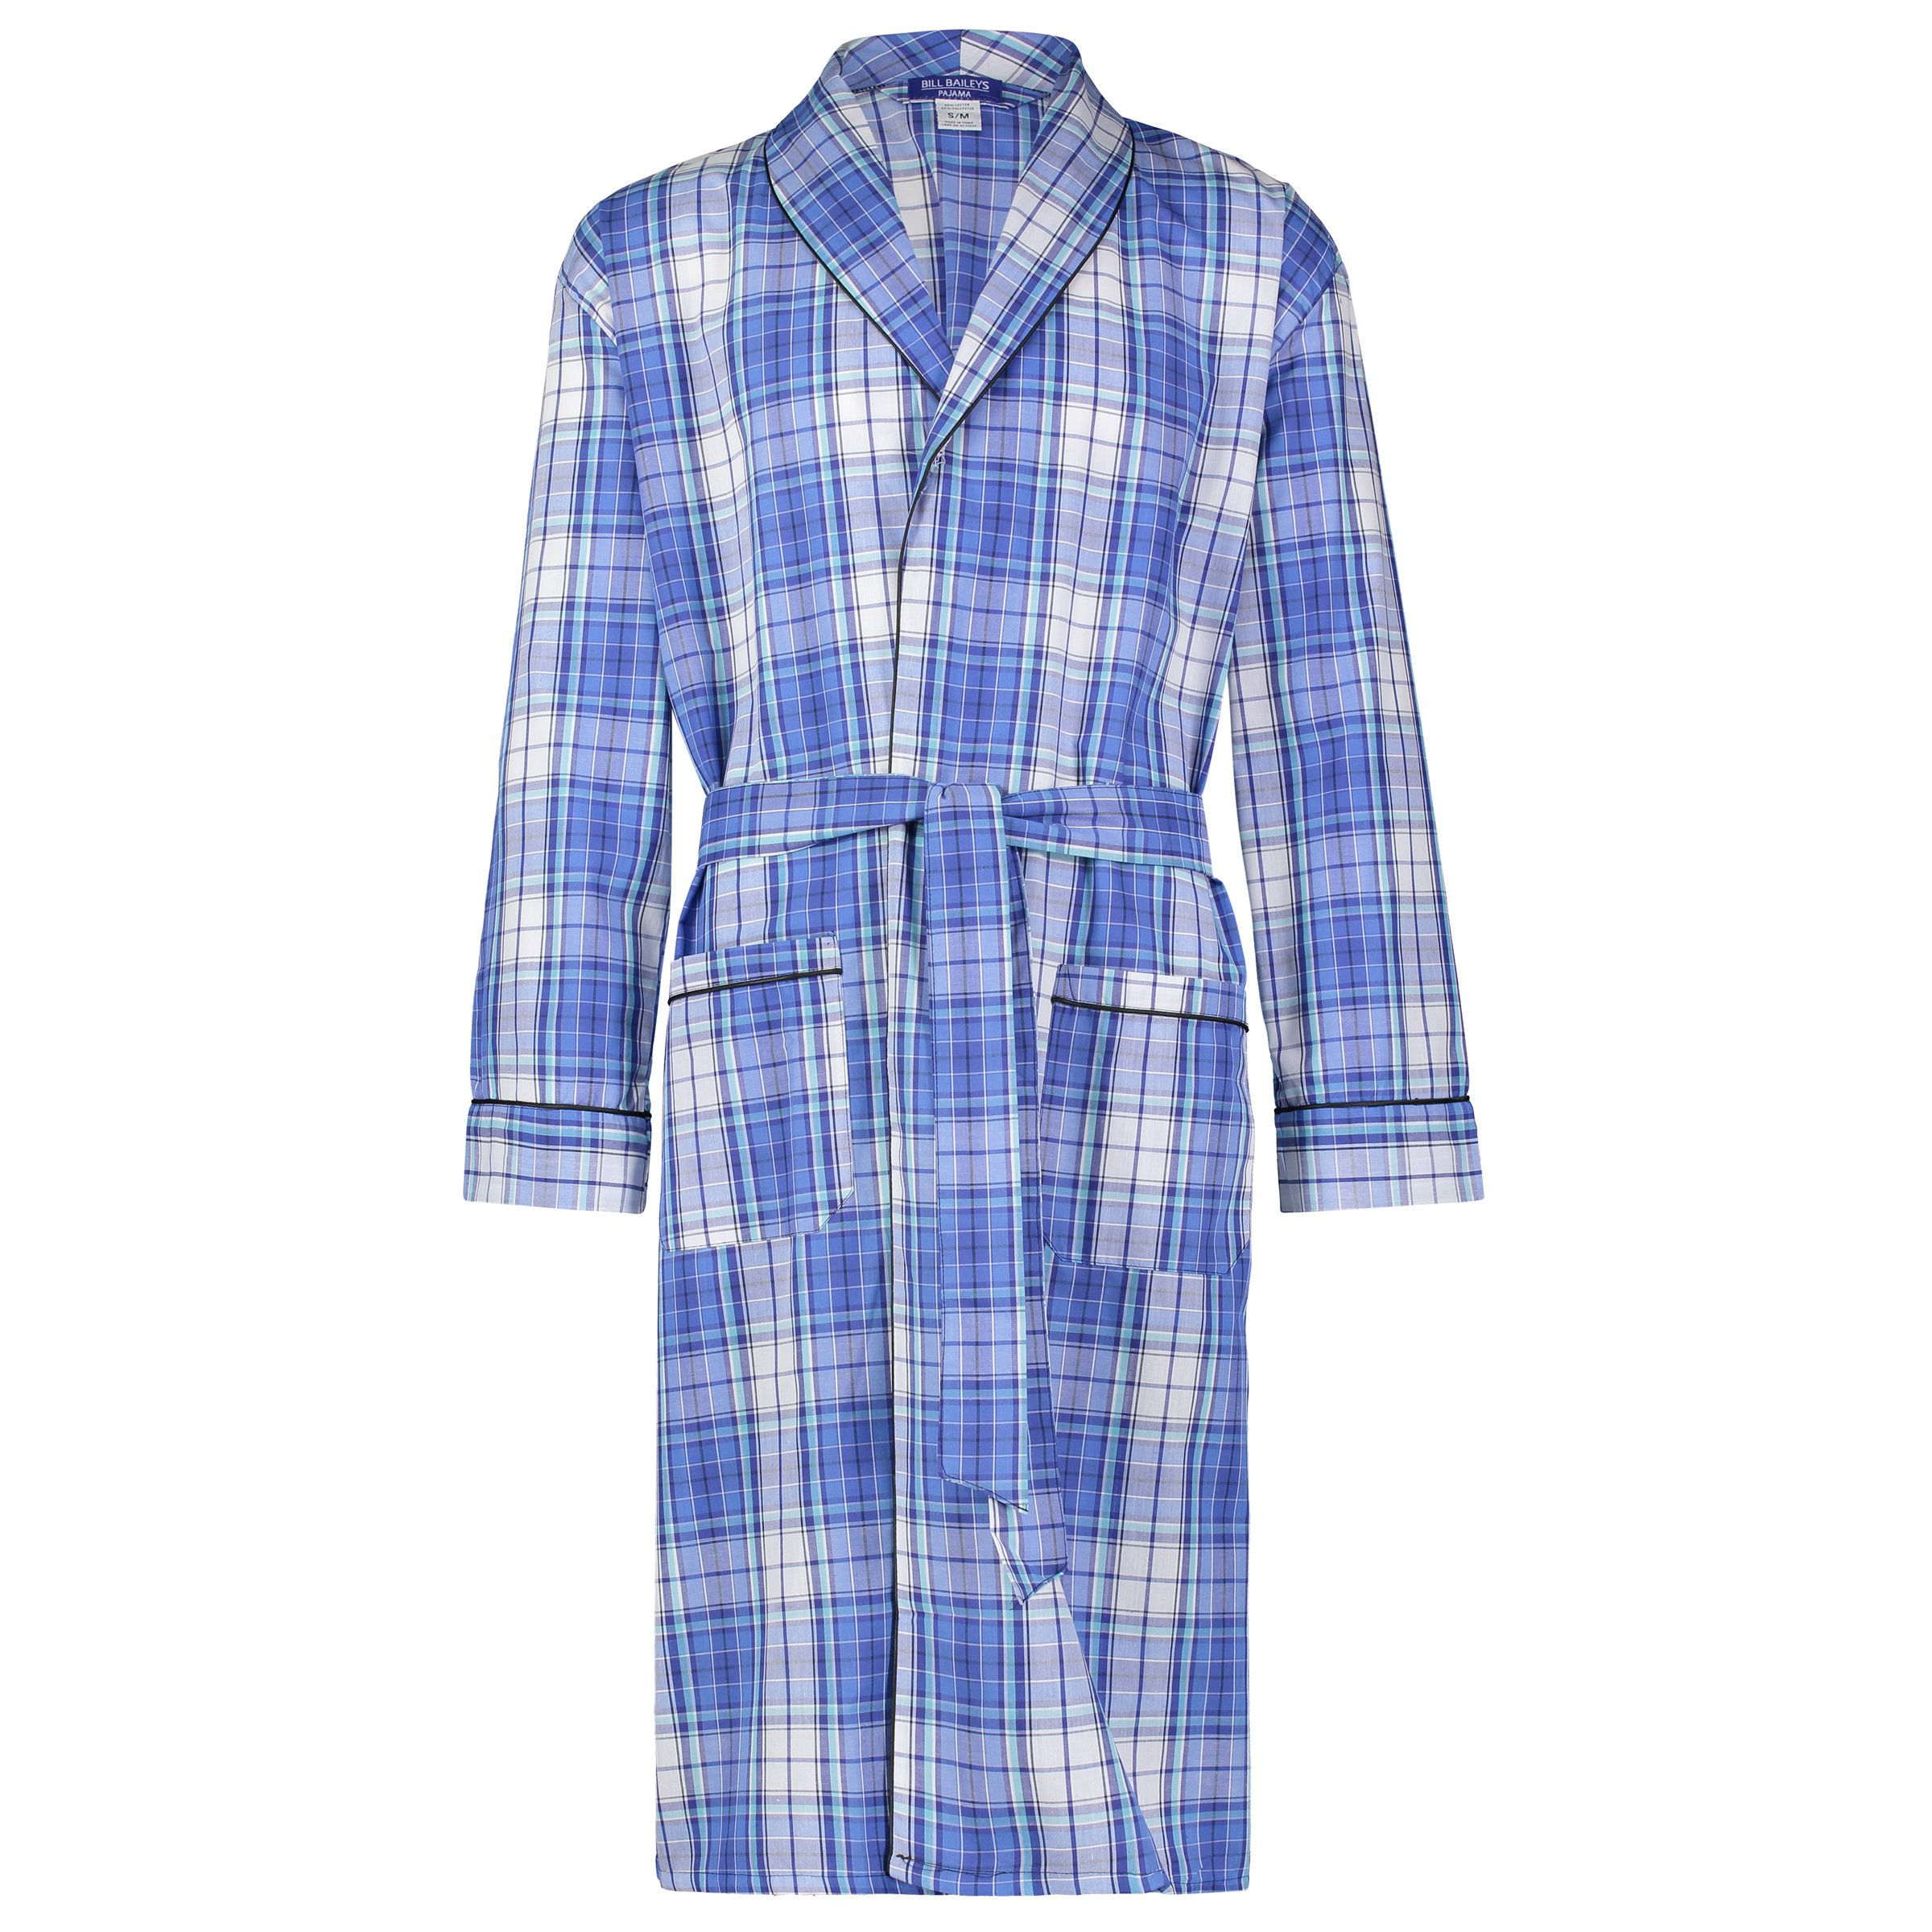 Bill Baileys Men's Long Sleeve Premium Cotton Blend Woven Robe Lightweight Sleep & Morning Robe (2X-Large, Teal Blue Plaid)